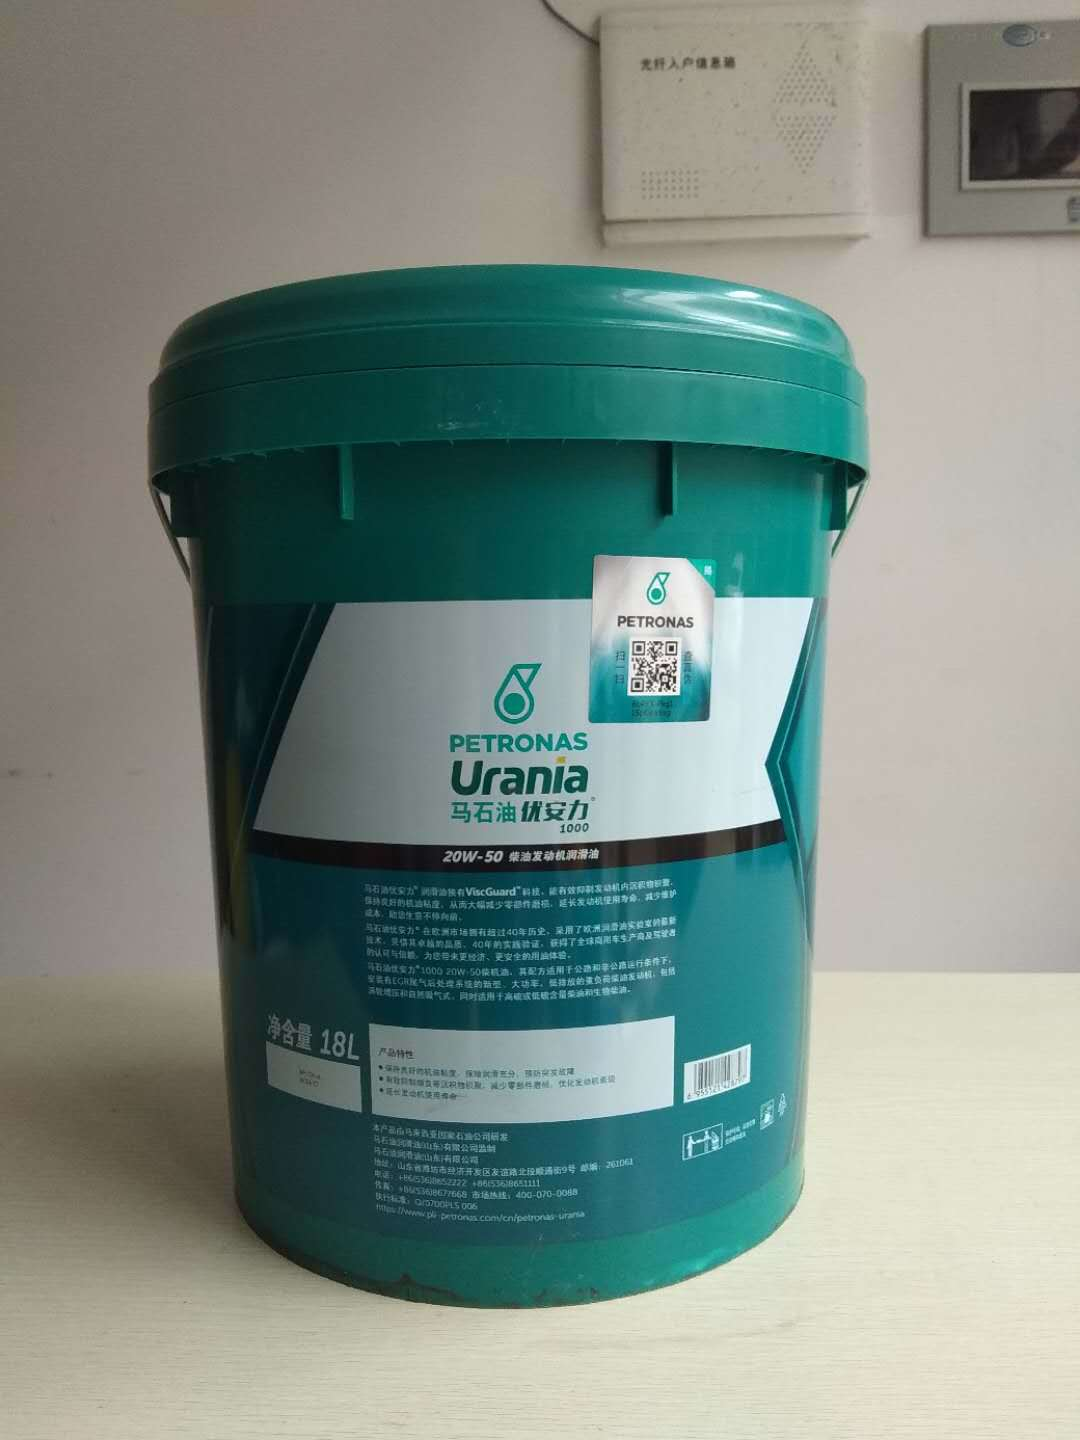 Petronas excellent 1000 K-4 20W/50 18L four diesel engine oil heavy duty engine oil